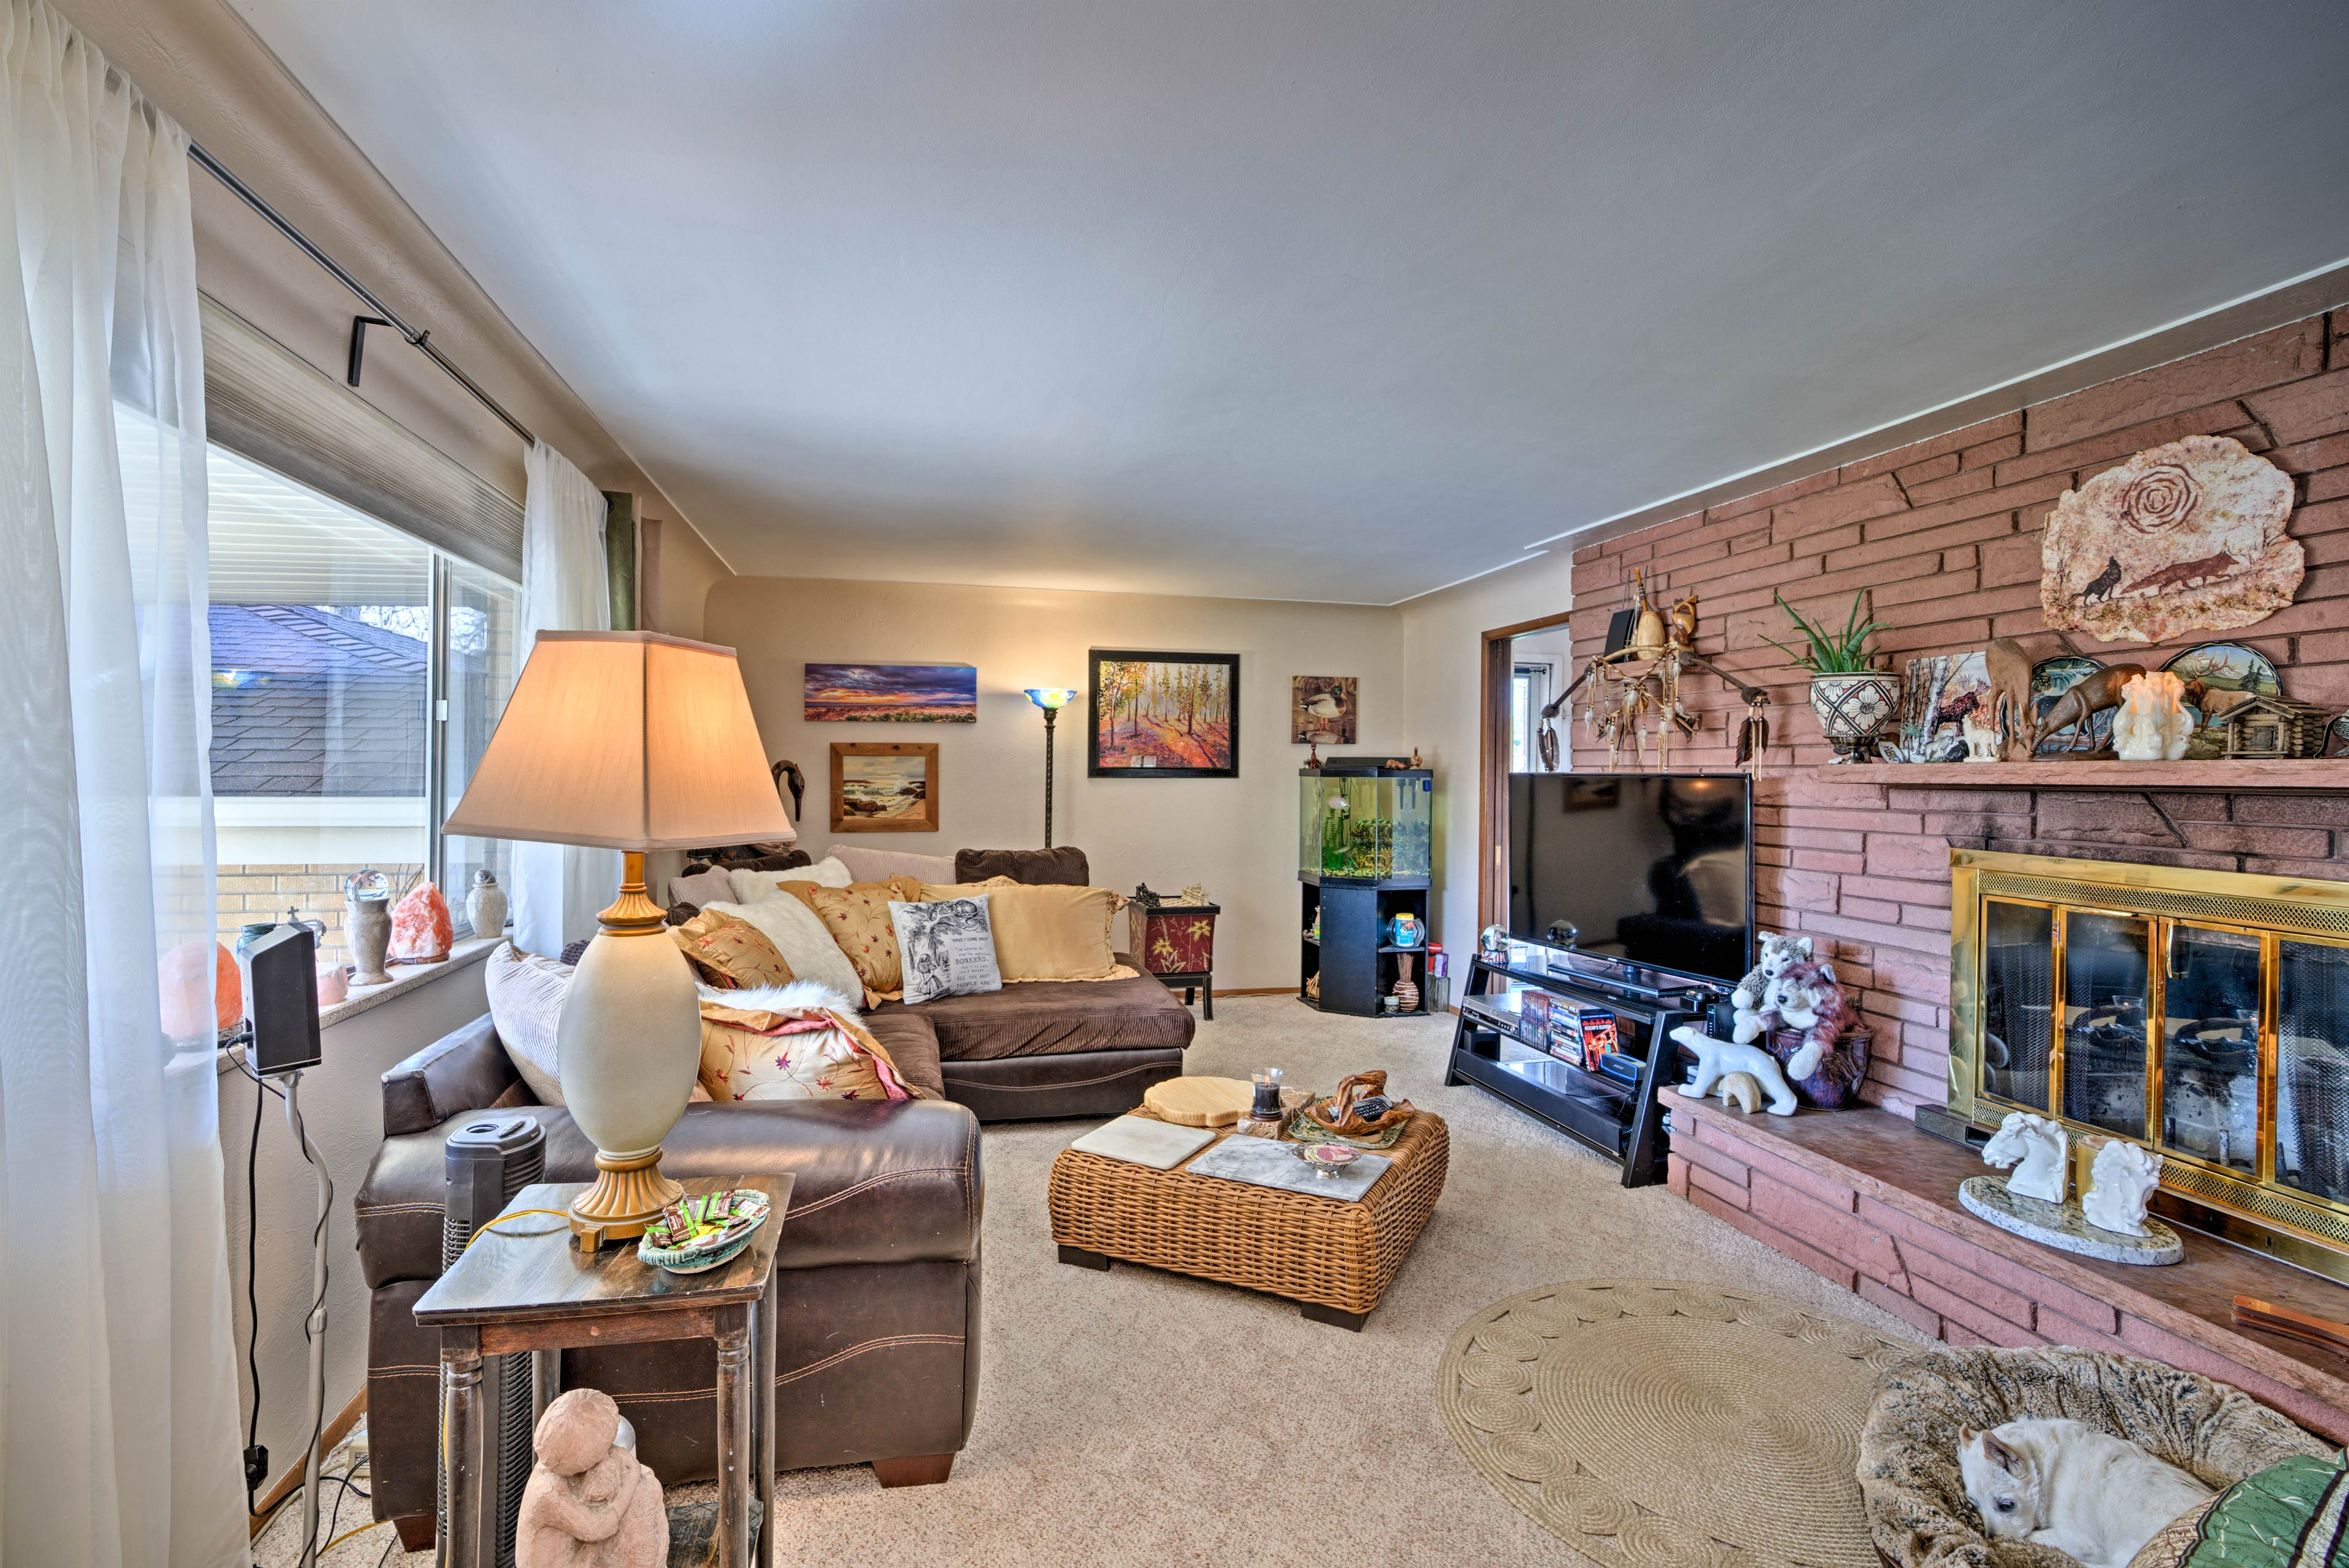 Brick accents and a large flat-screen TV highlight the living area.